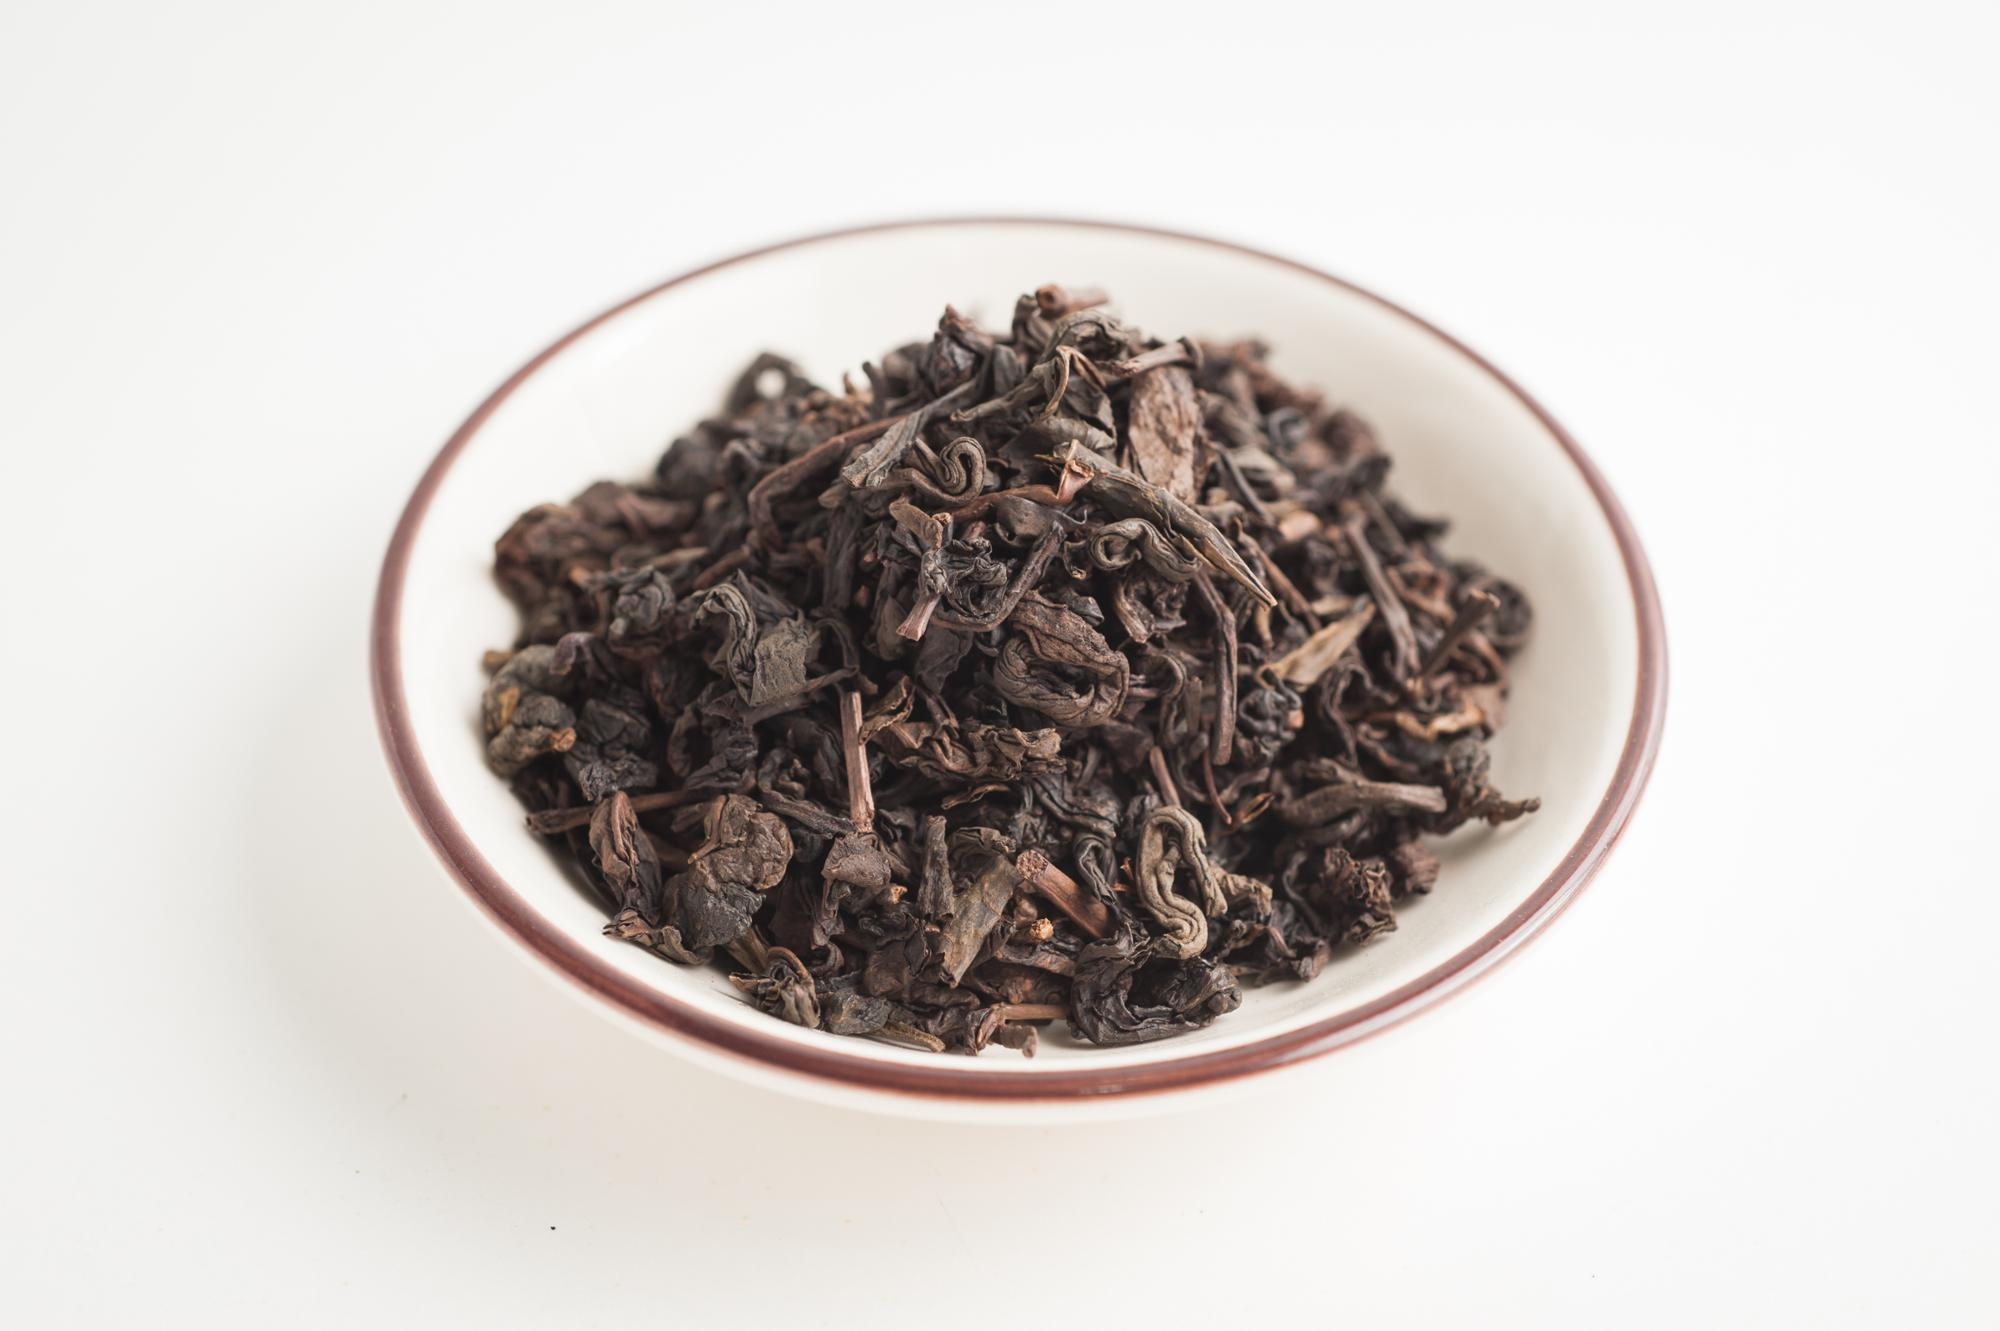 600g TachunGhO 3015 Black tea leaf assam